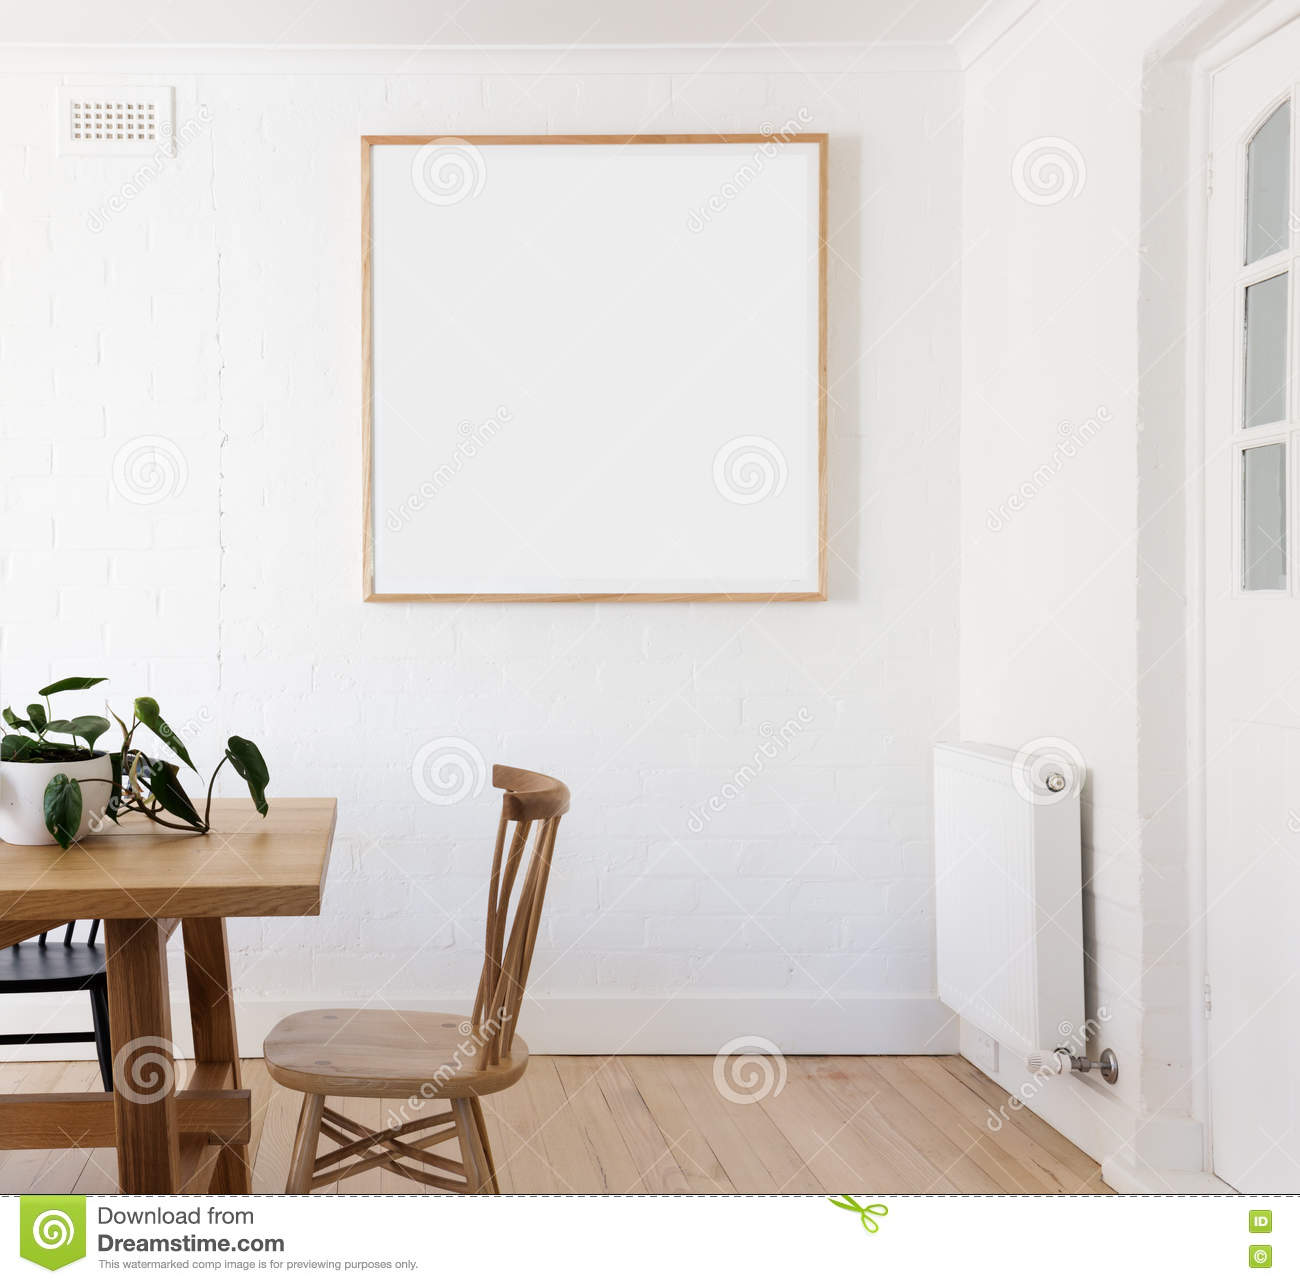 Blank framed print on white wall in danish styled interior for Framed prints for dining room